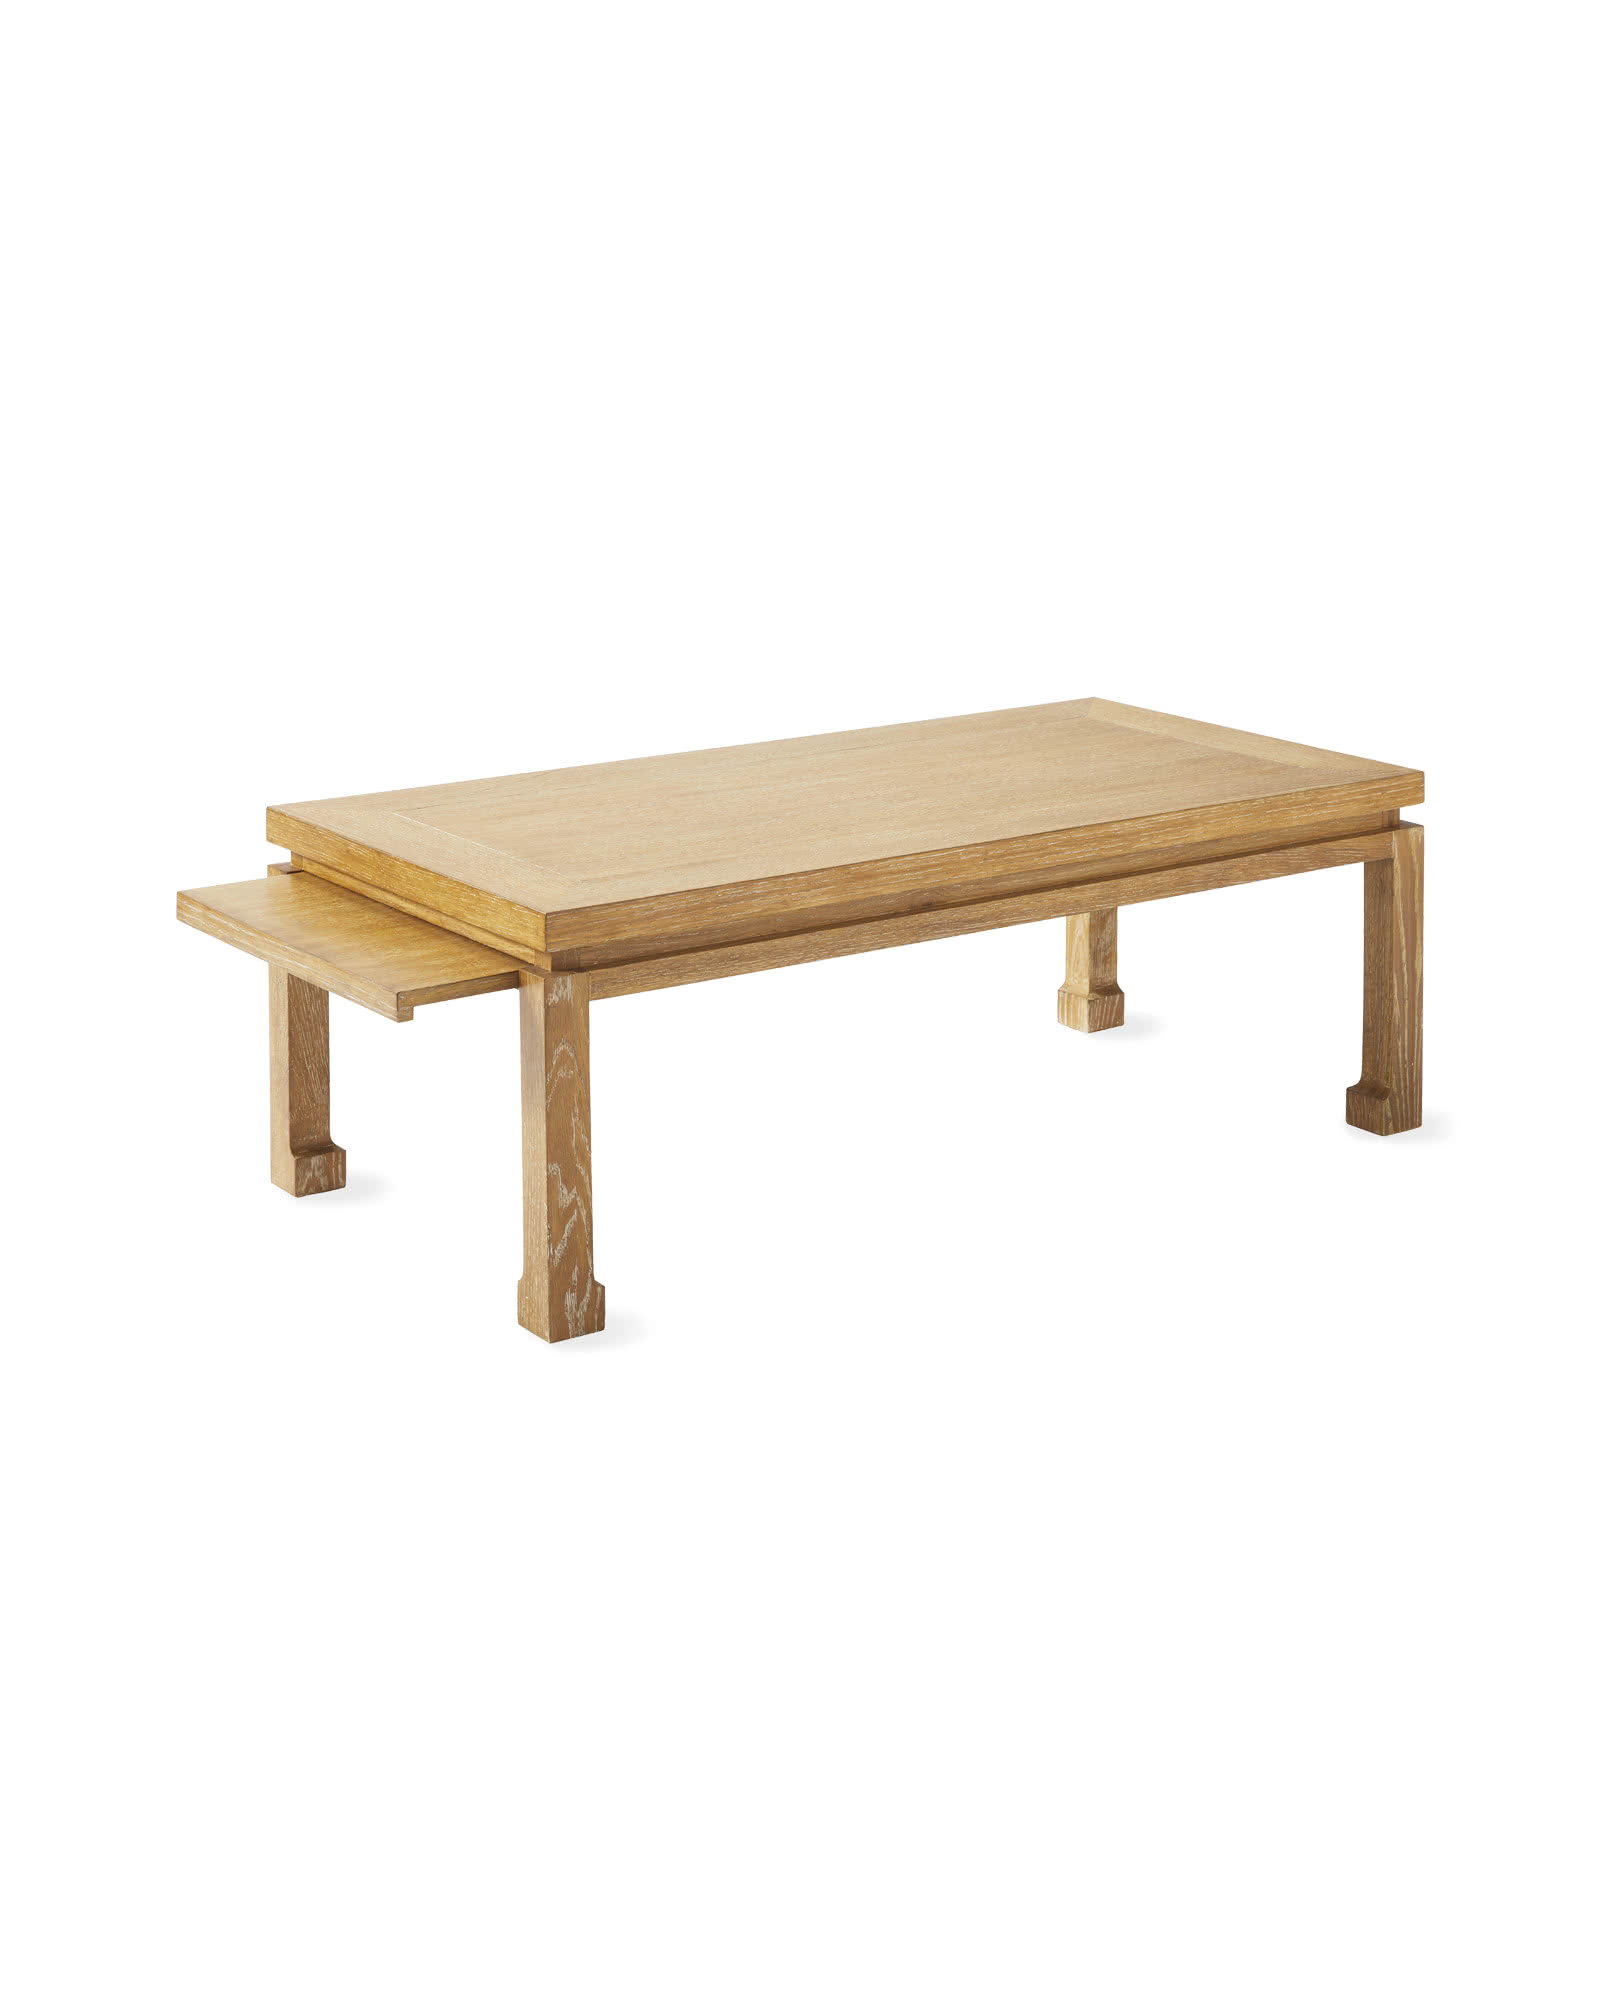 Small Coffee Tables B M: Small Reese Coffee Table